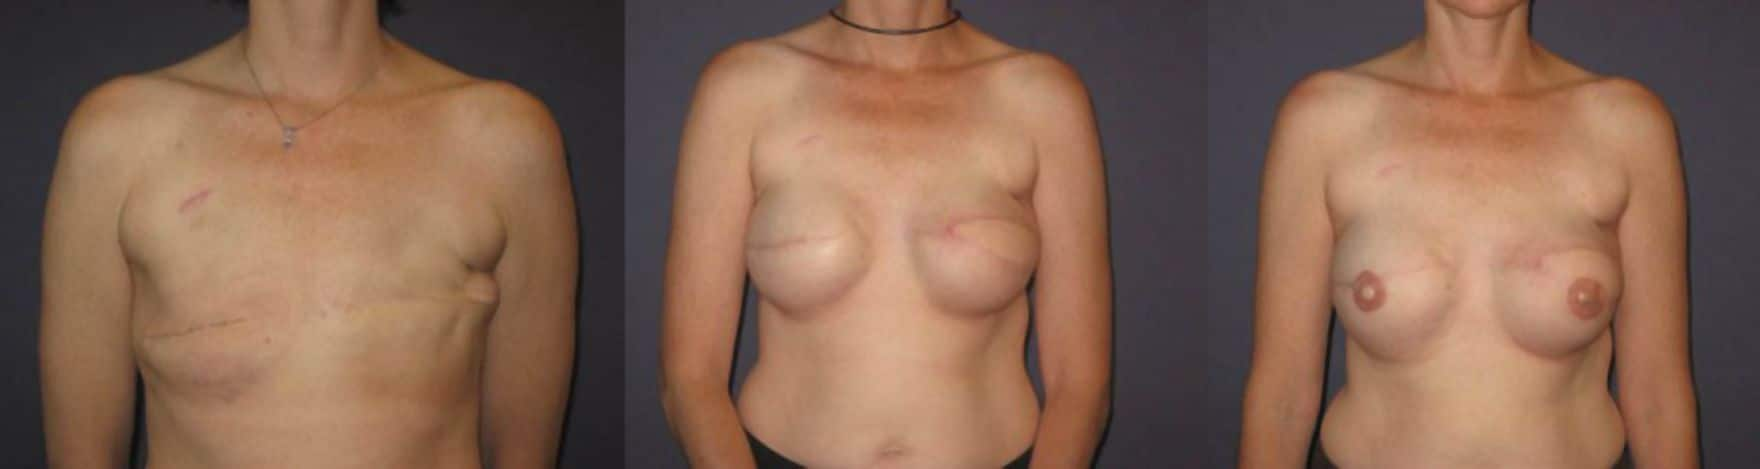 Mammary reconstruction - Picture 2